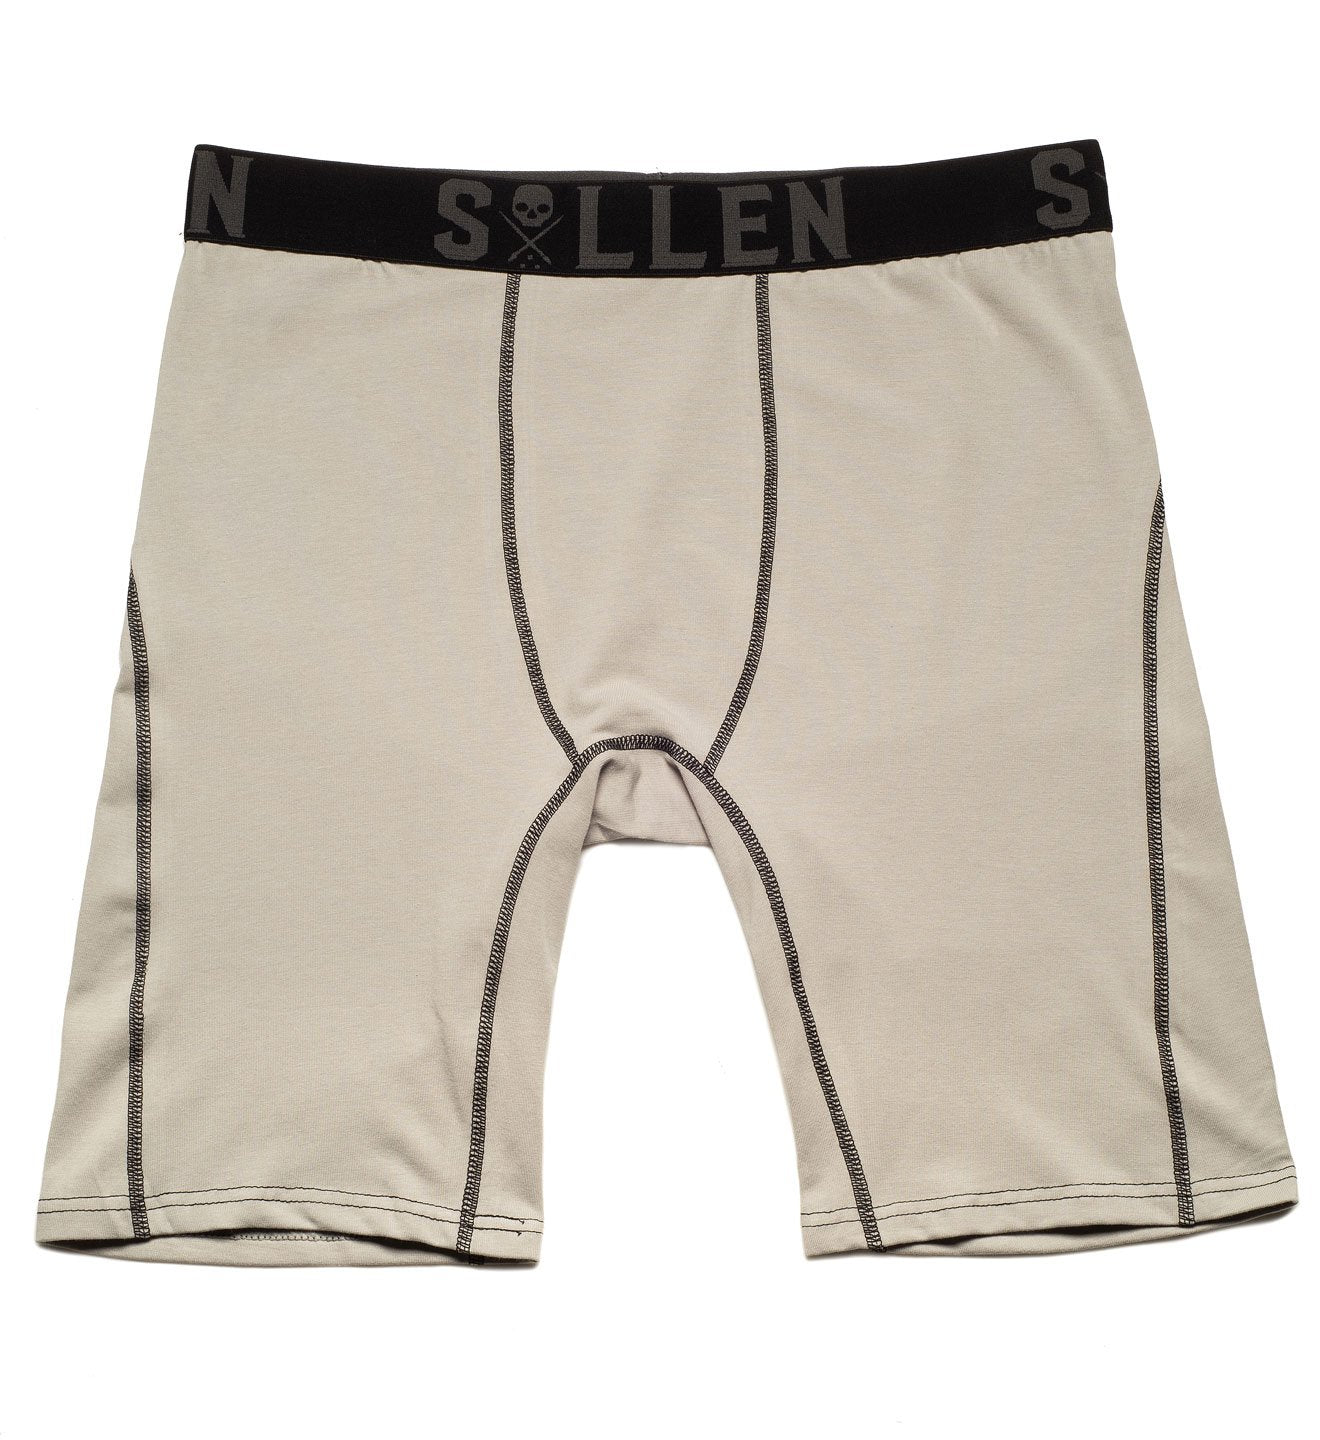 CLASSIC BOXERS COOL GRAY